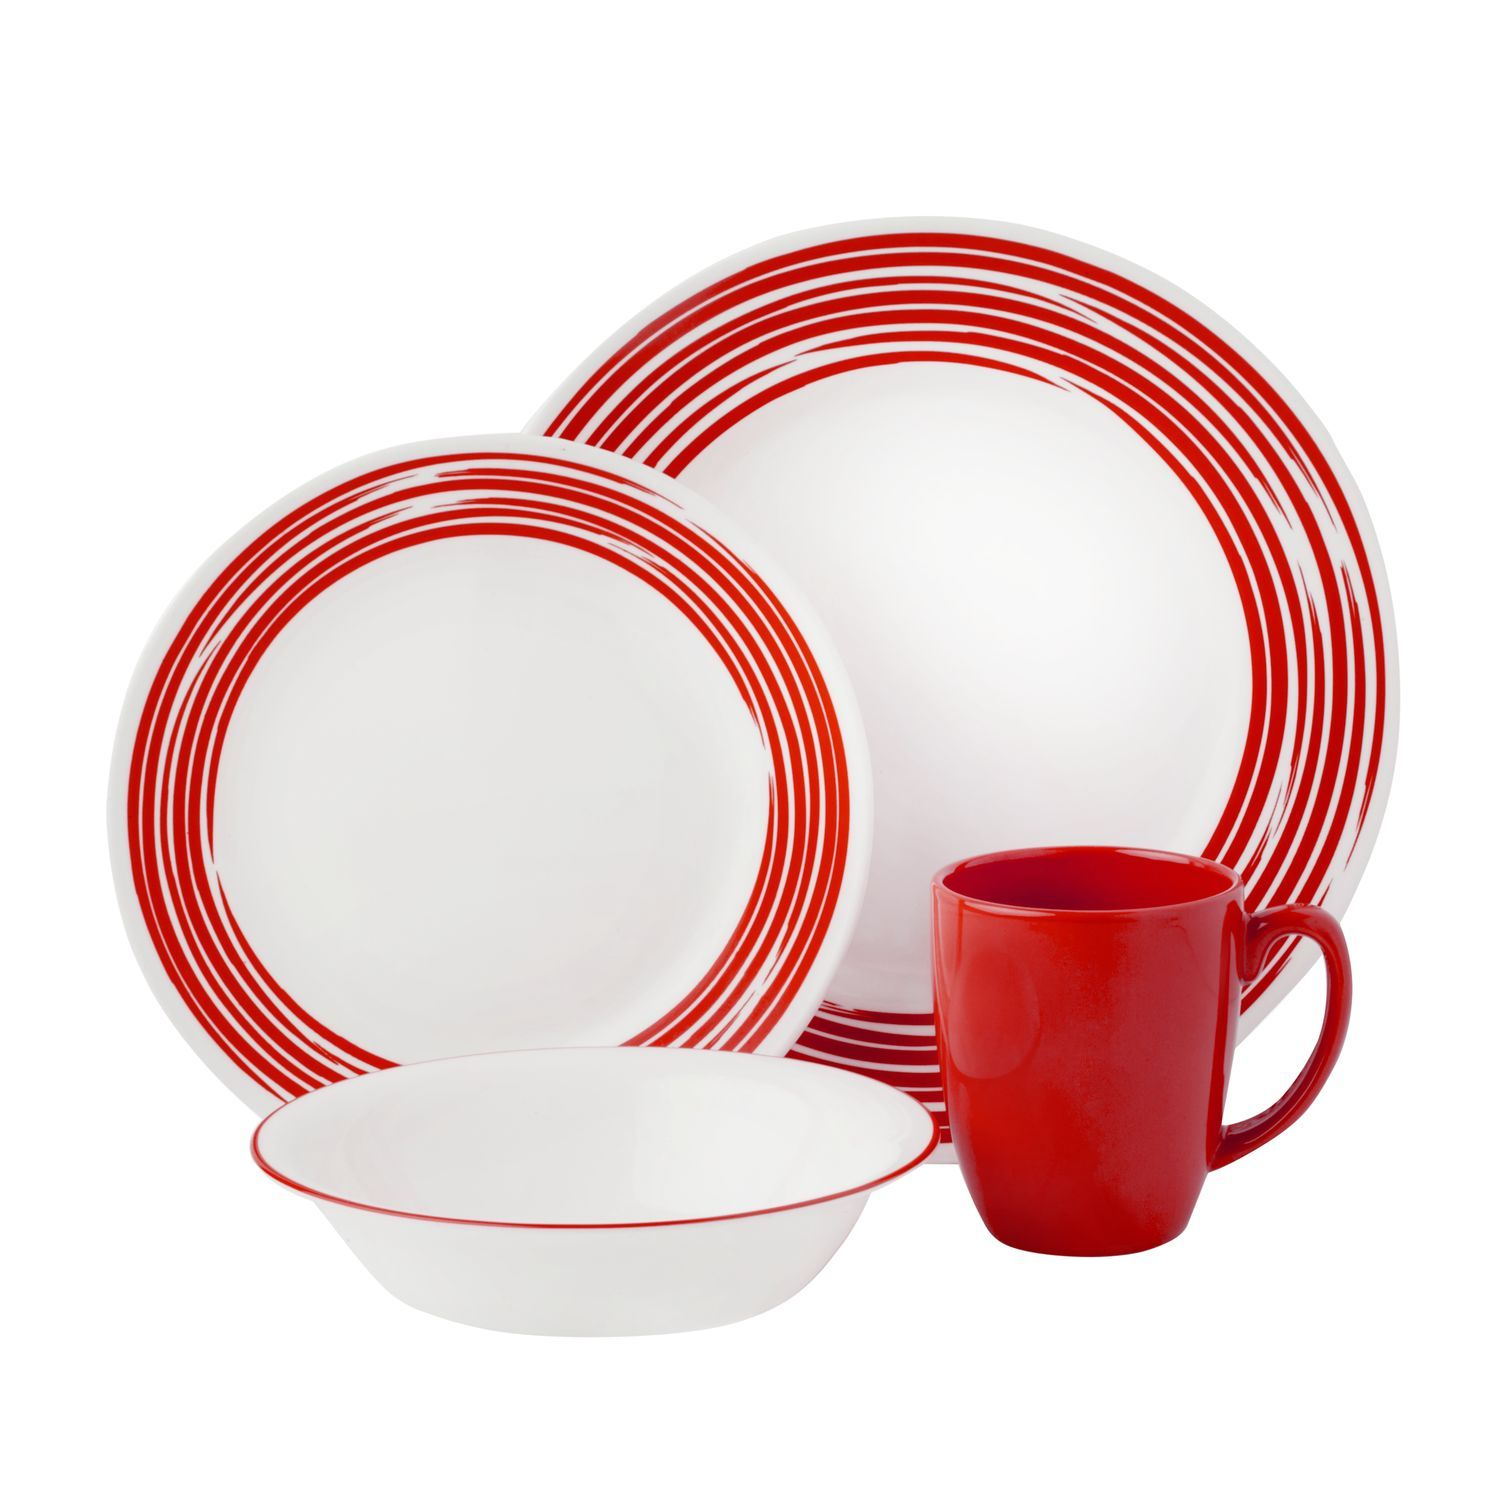 Corelle Boutique Brushed 16 Pc Dinnerware Set Redboutique